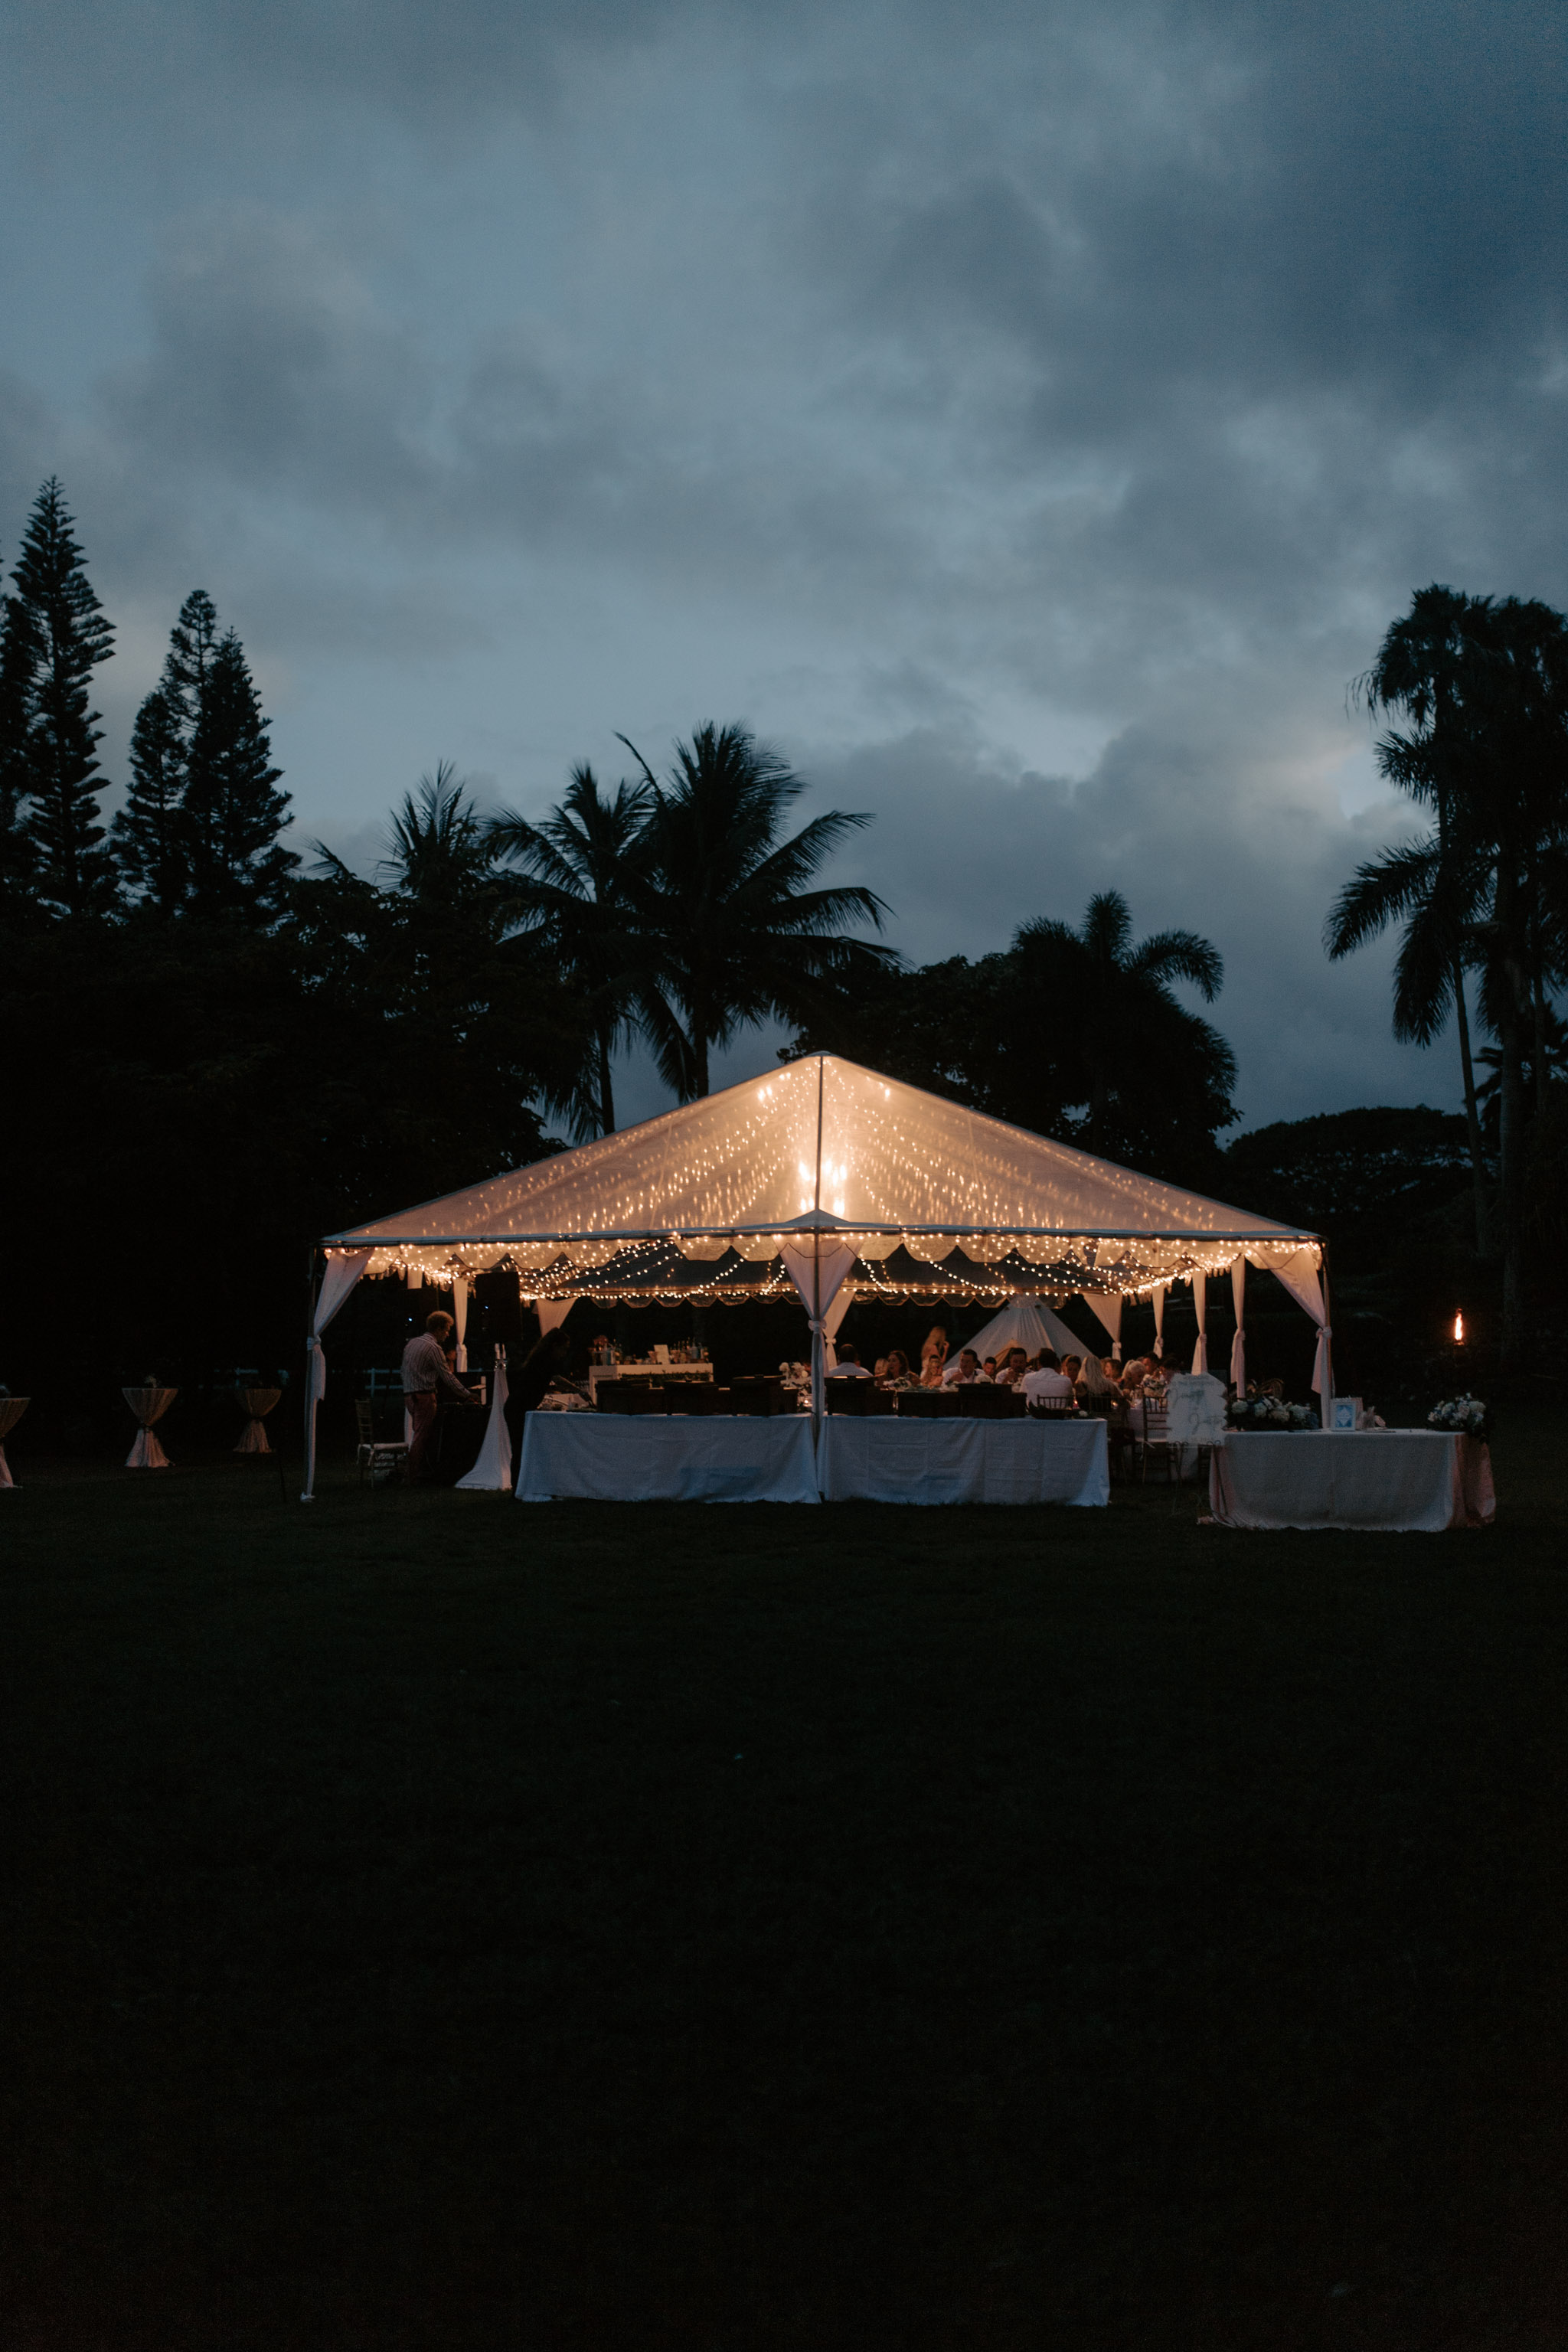 Gorgeous wedding photography at Kualoa Ranch Paliku Gardens. Photography by Hawaii fine art wedding photographer Desiree Leilani